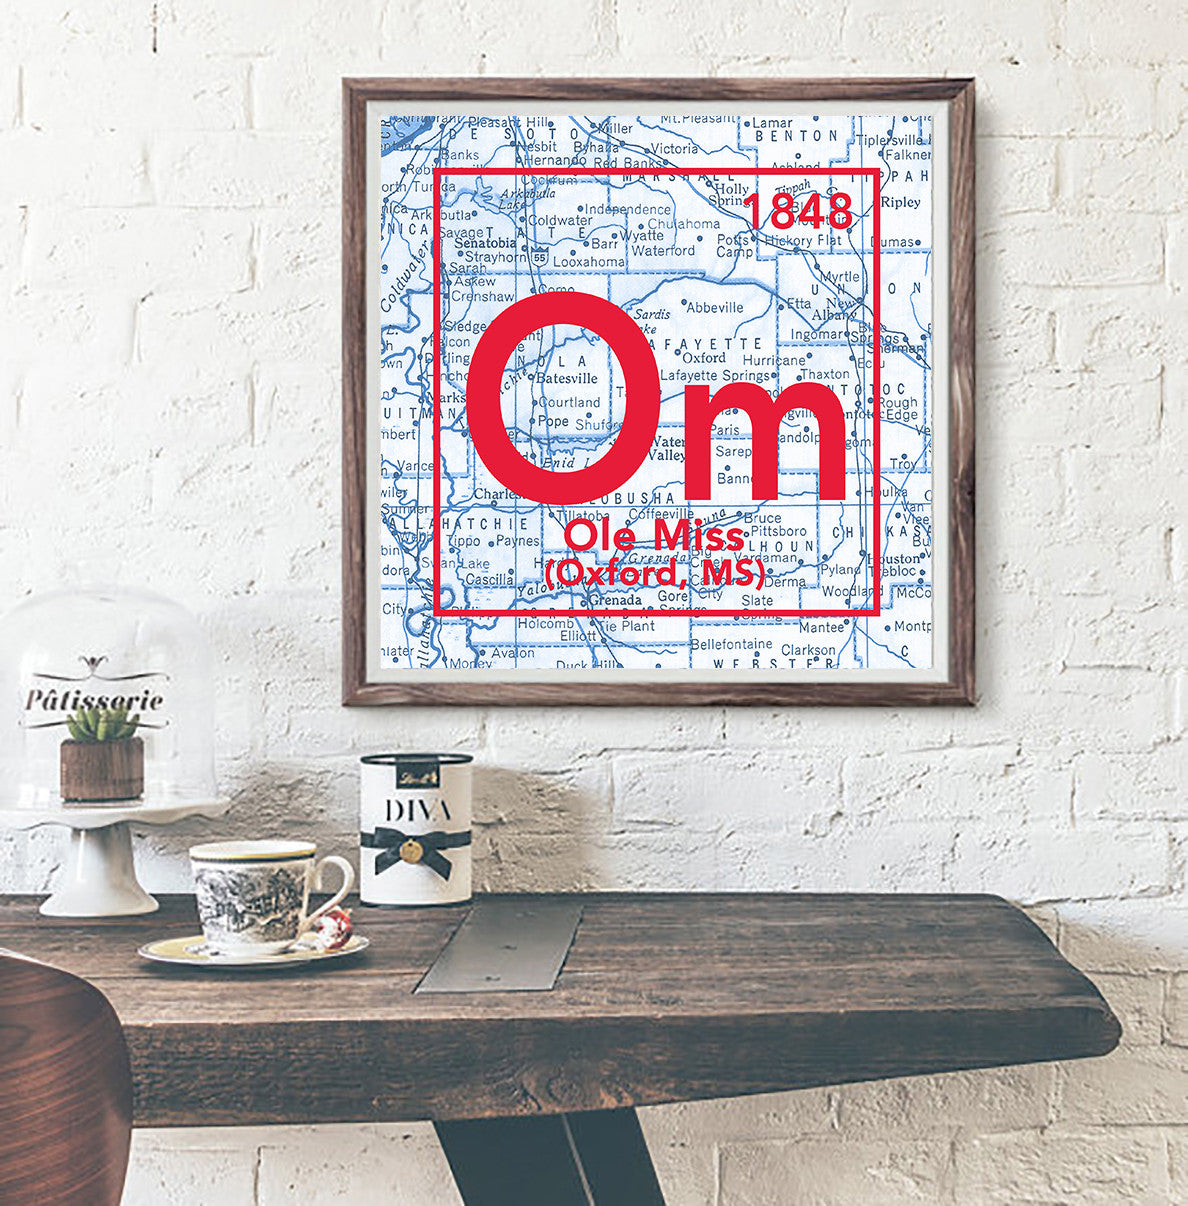 Ole miss oxford mississippi vintage periodic map art print ole miss oxford mississippi vintage periodic map art print urtaz Images